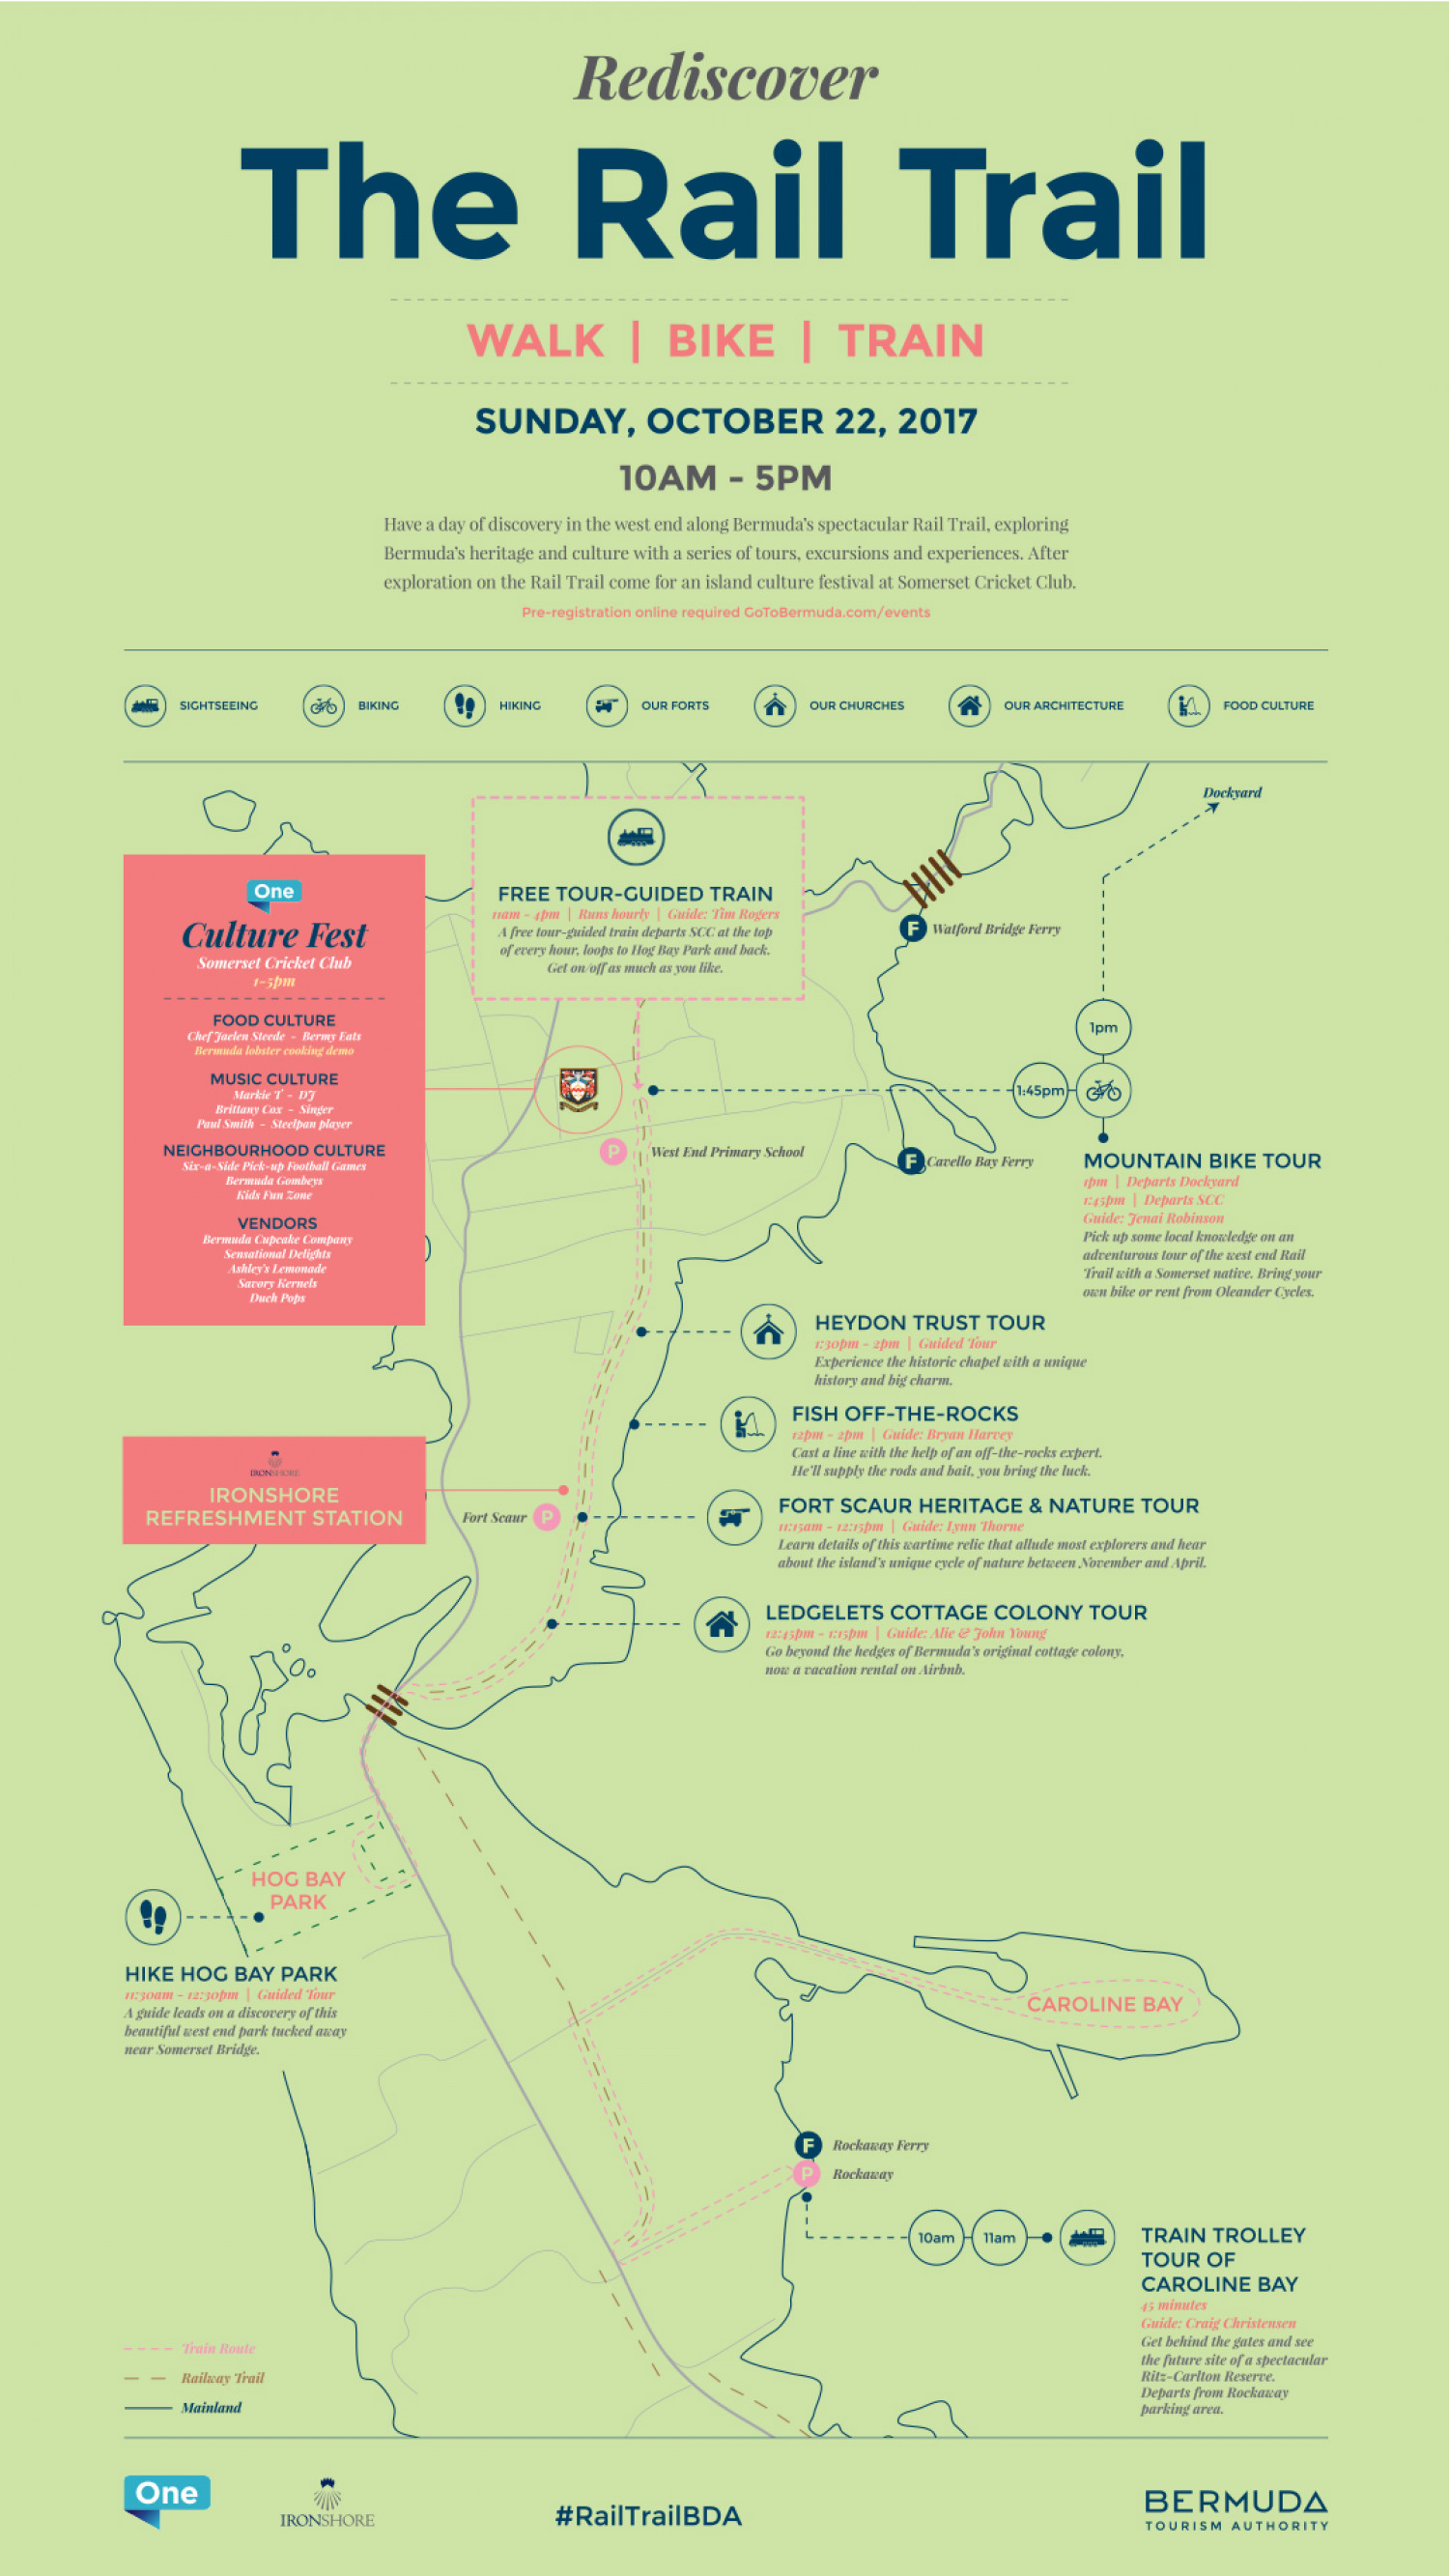 Rediscover The Rail Trail Infographic